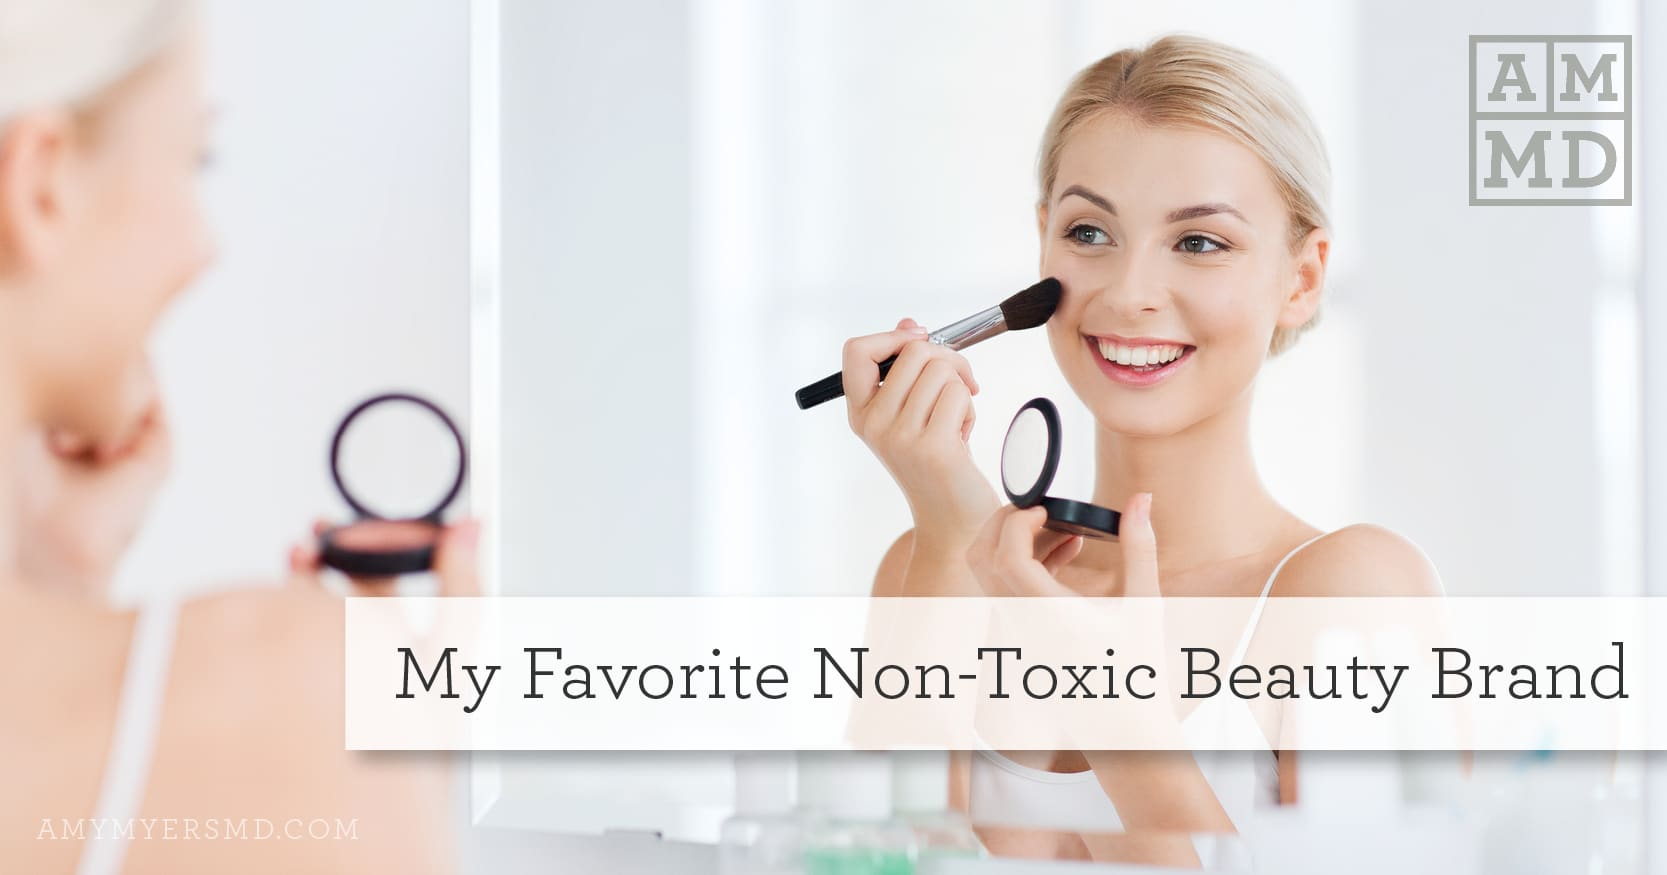 My Favorite Non-Toxic Beauty Brand - Woman putting on makeup - Featured Image - Amy Myers MD